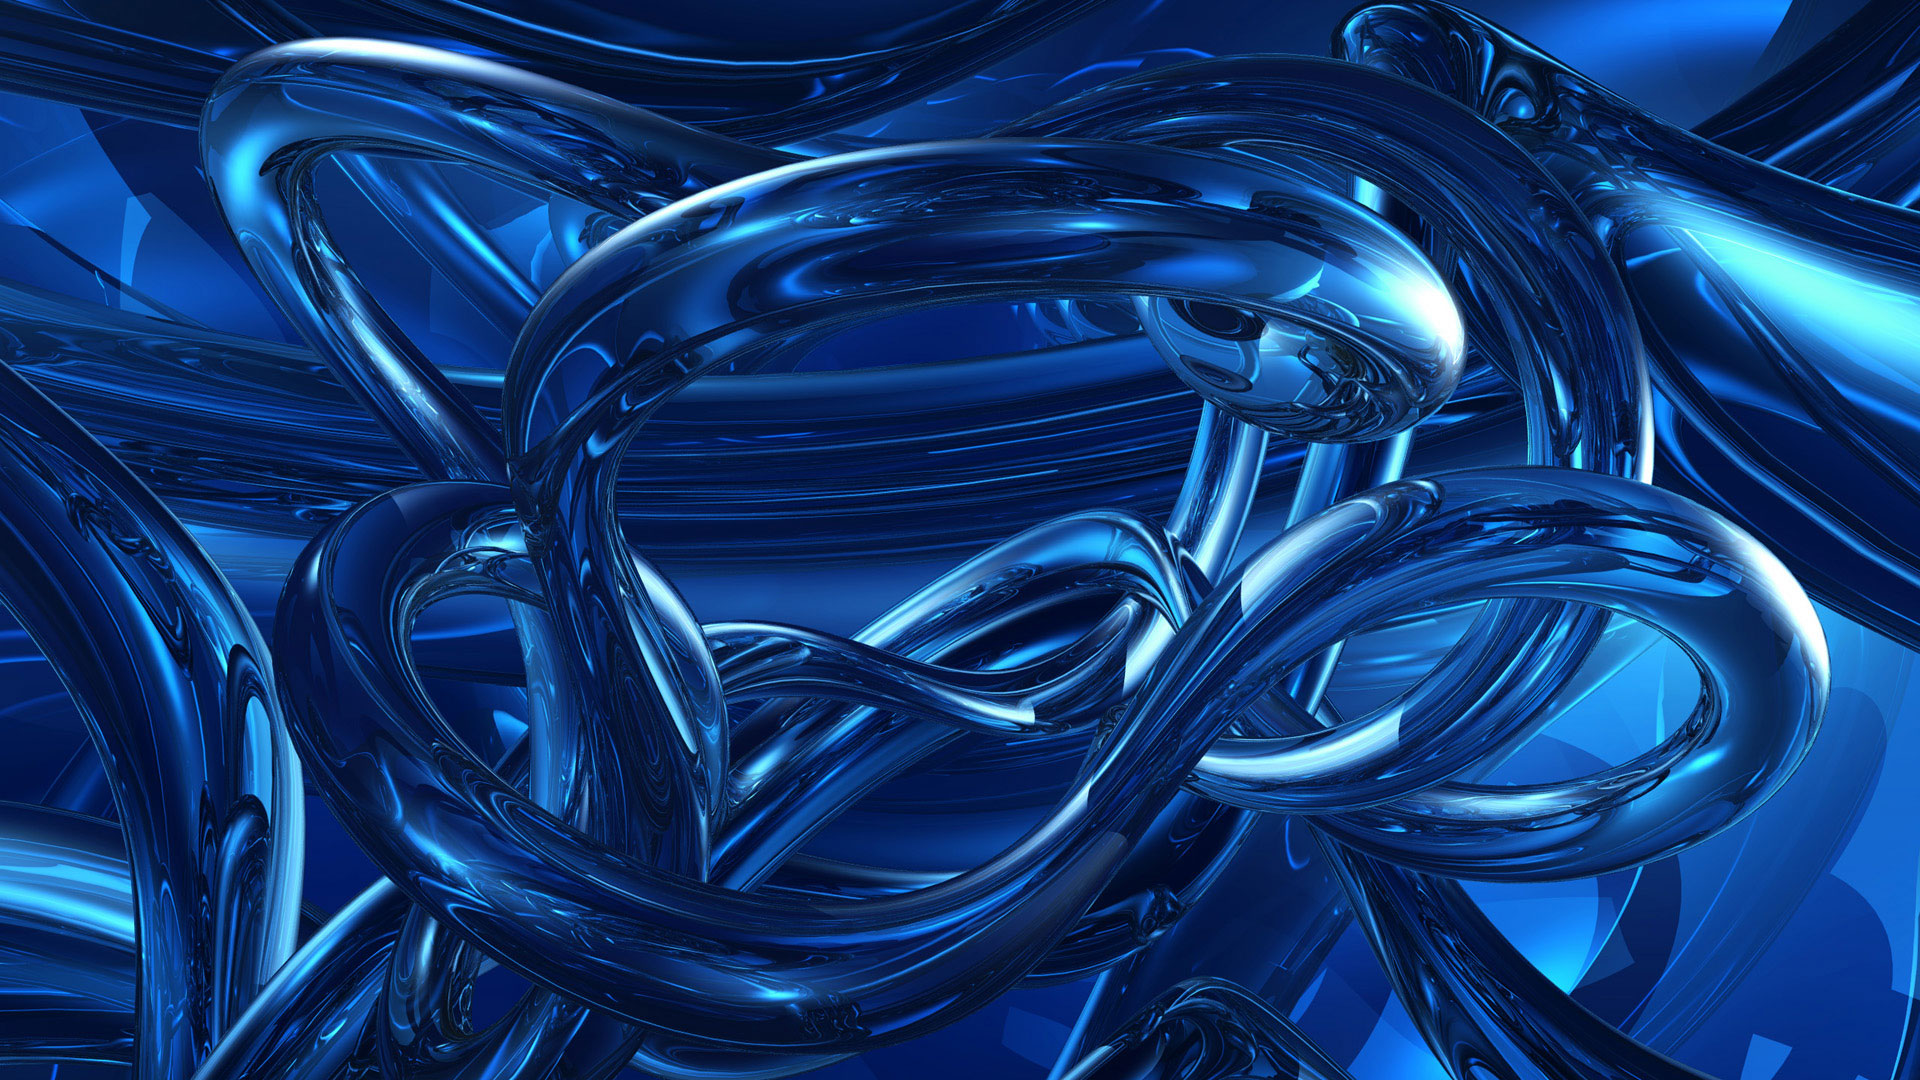 Dark Blue Abstracts